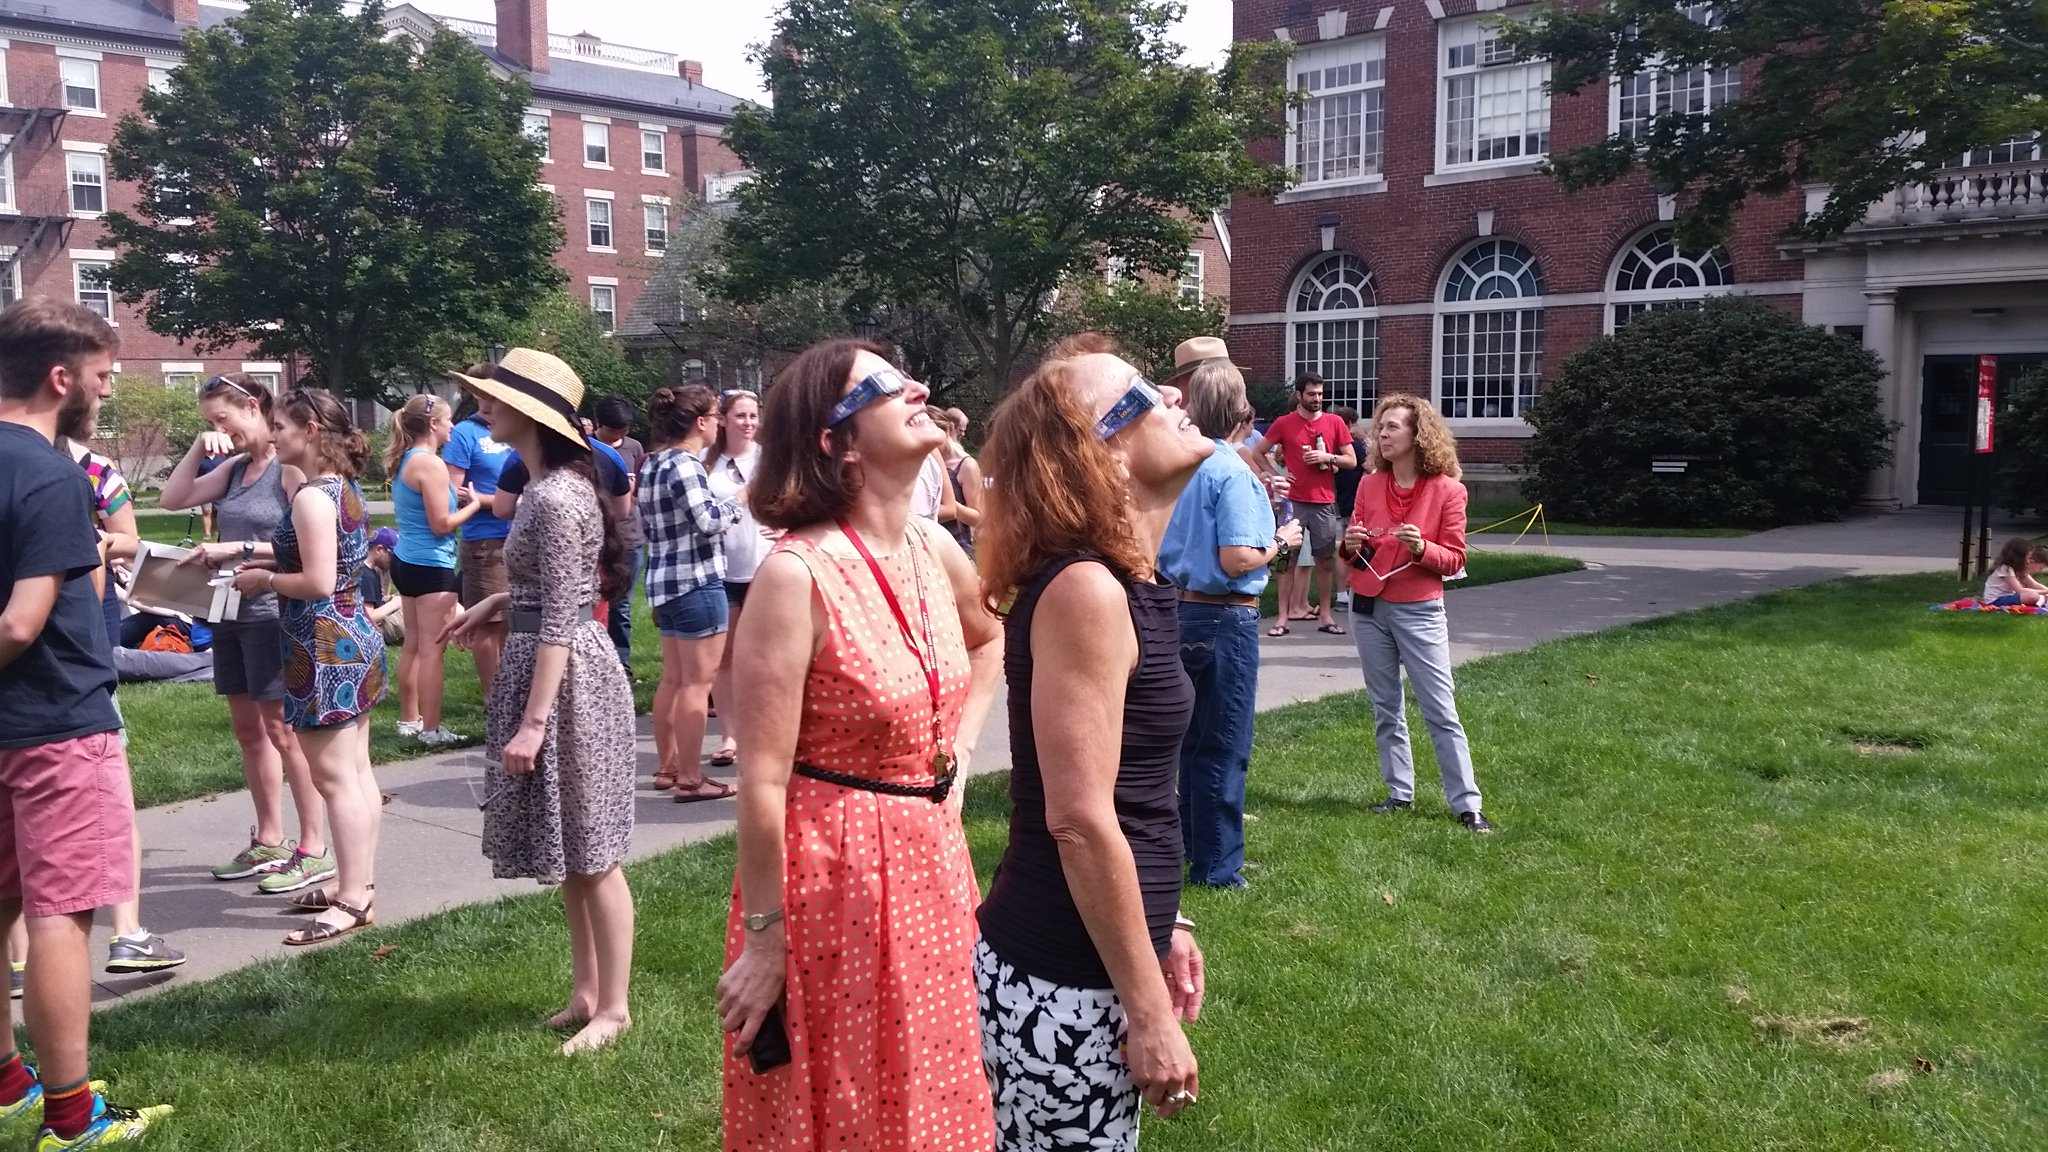 @CogutCenter Traude Kastner and Melissa Shein viewing the eclipse from Lincoln Field https://t.co/OBFSlTBq6H